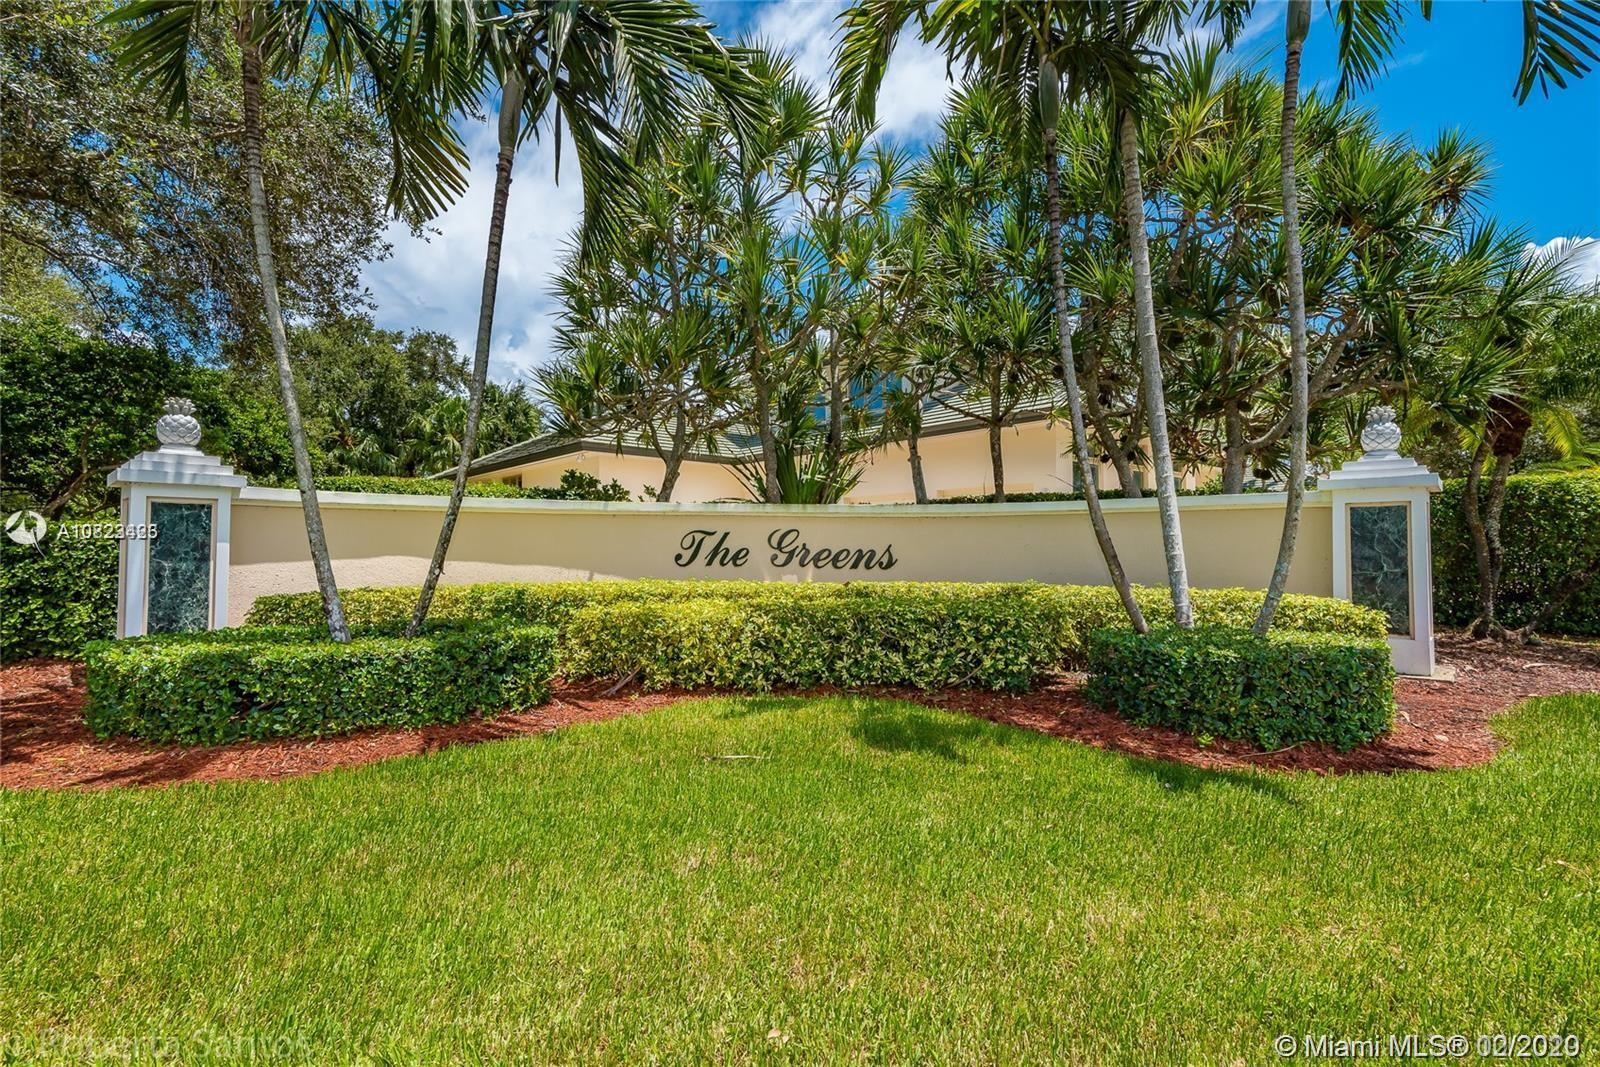 1737 NW 124th Way, Coral Springs, Florida 33071, 5 Bedrooms Bedrooms, ,5 BathroomsBathrooms,Residential,For Sale,1737 NW 124th Way,A10823423